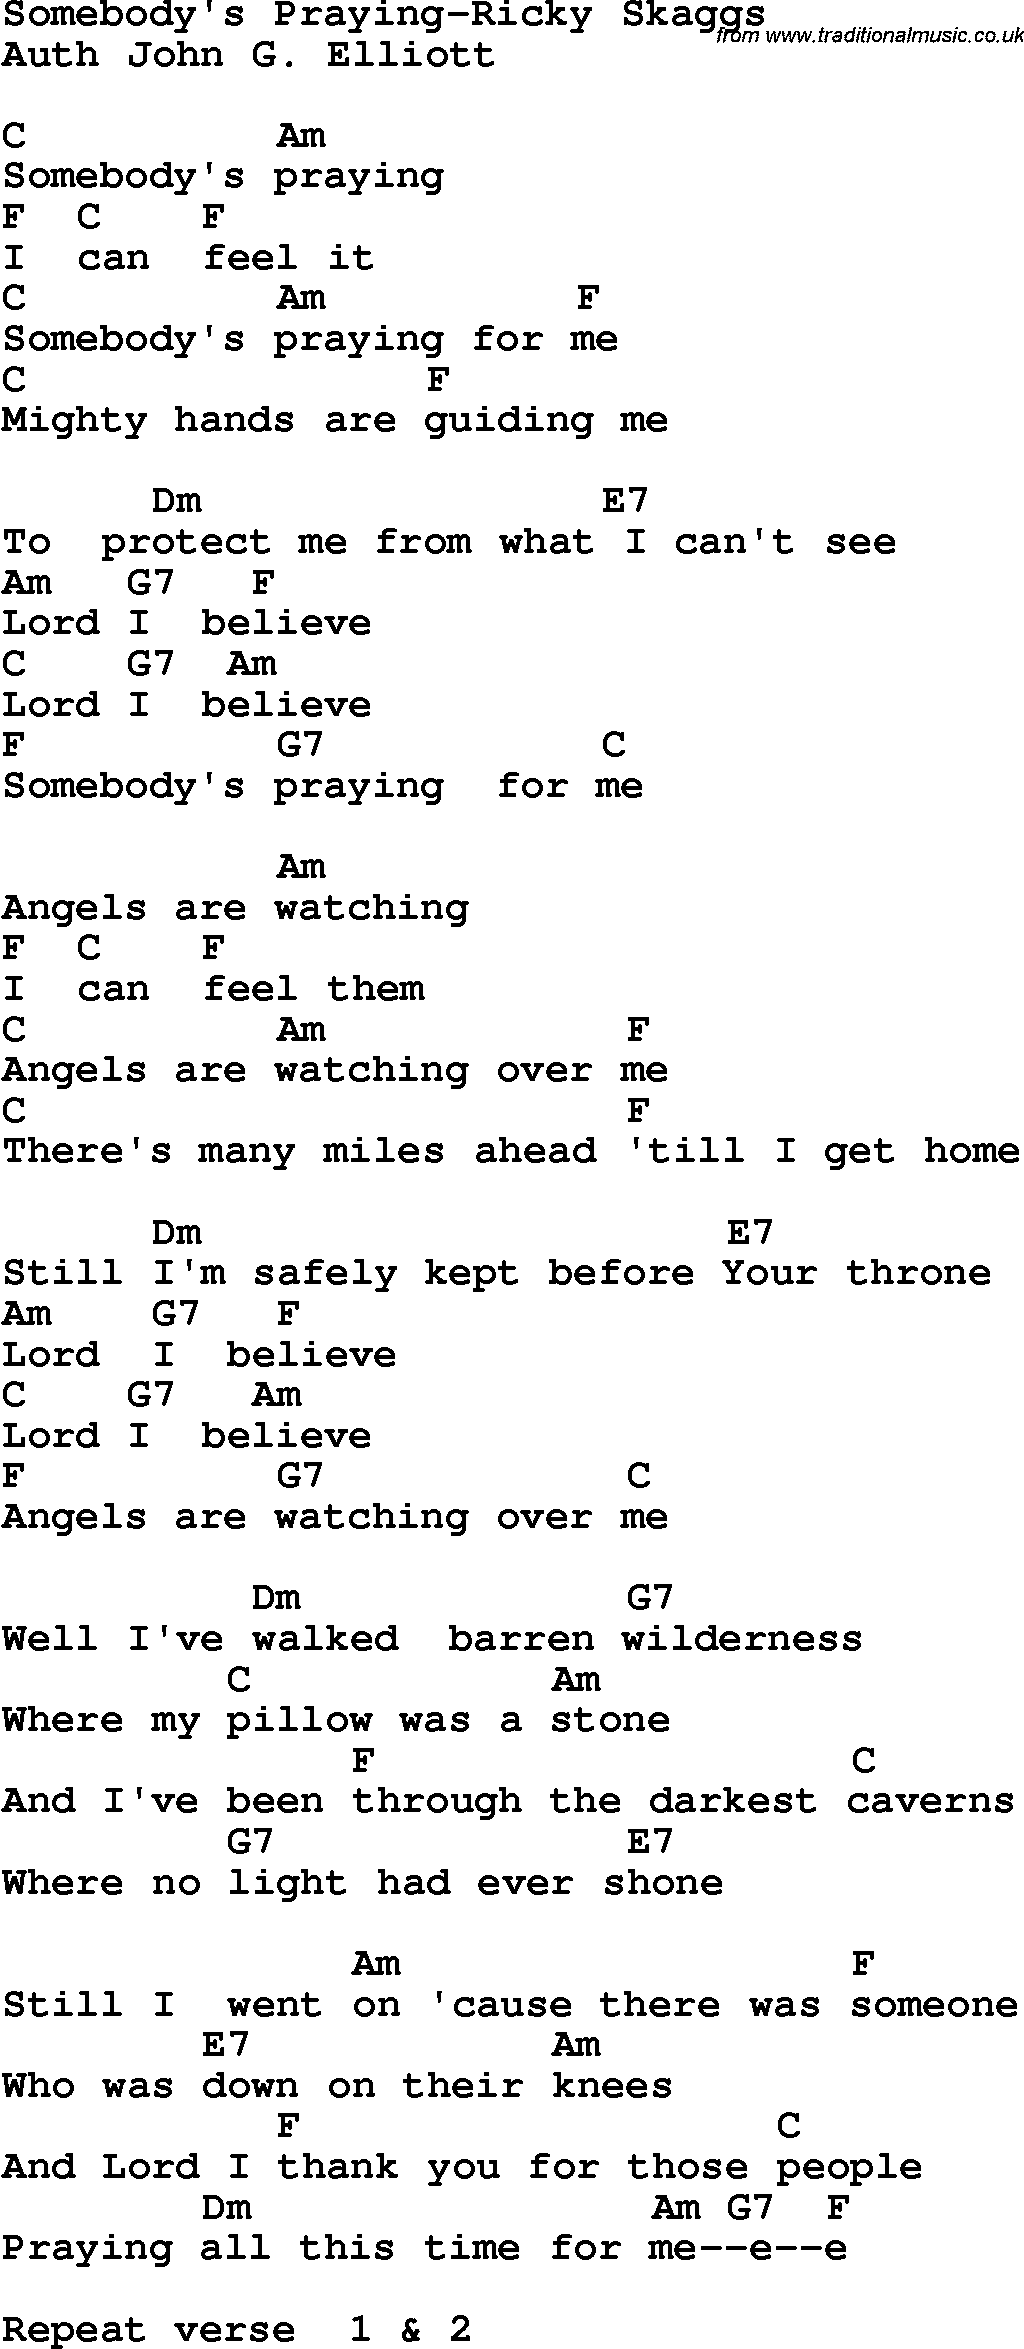 Country, Southern and Bluegrass Gospel Song Somebodyu0026#39;s Praying-Ricky Skaggs Lyrics with chords